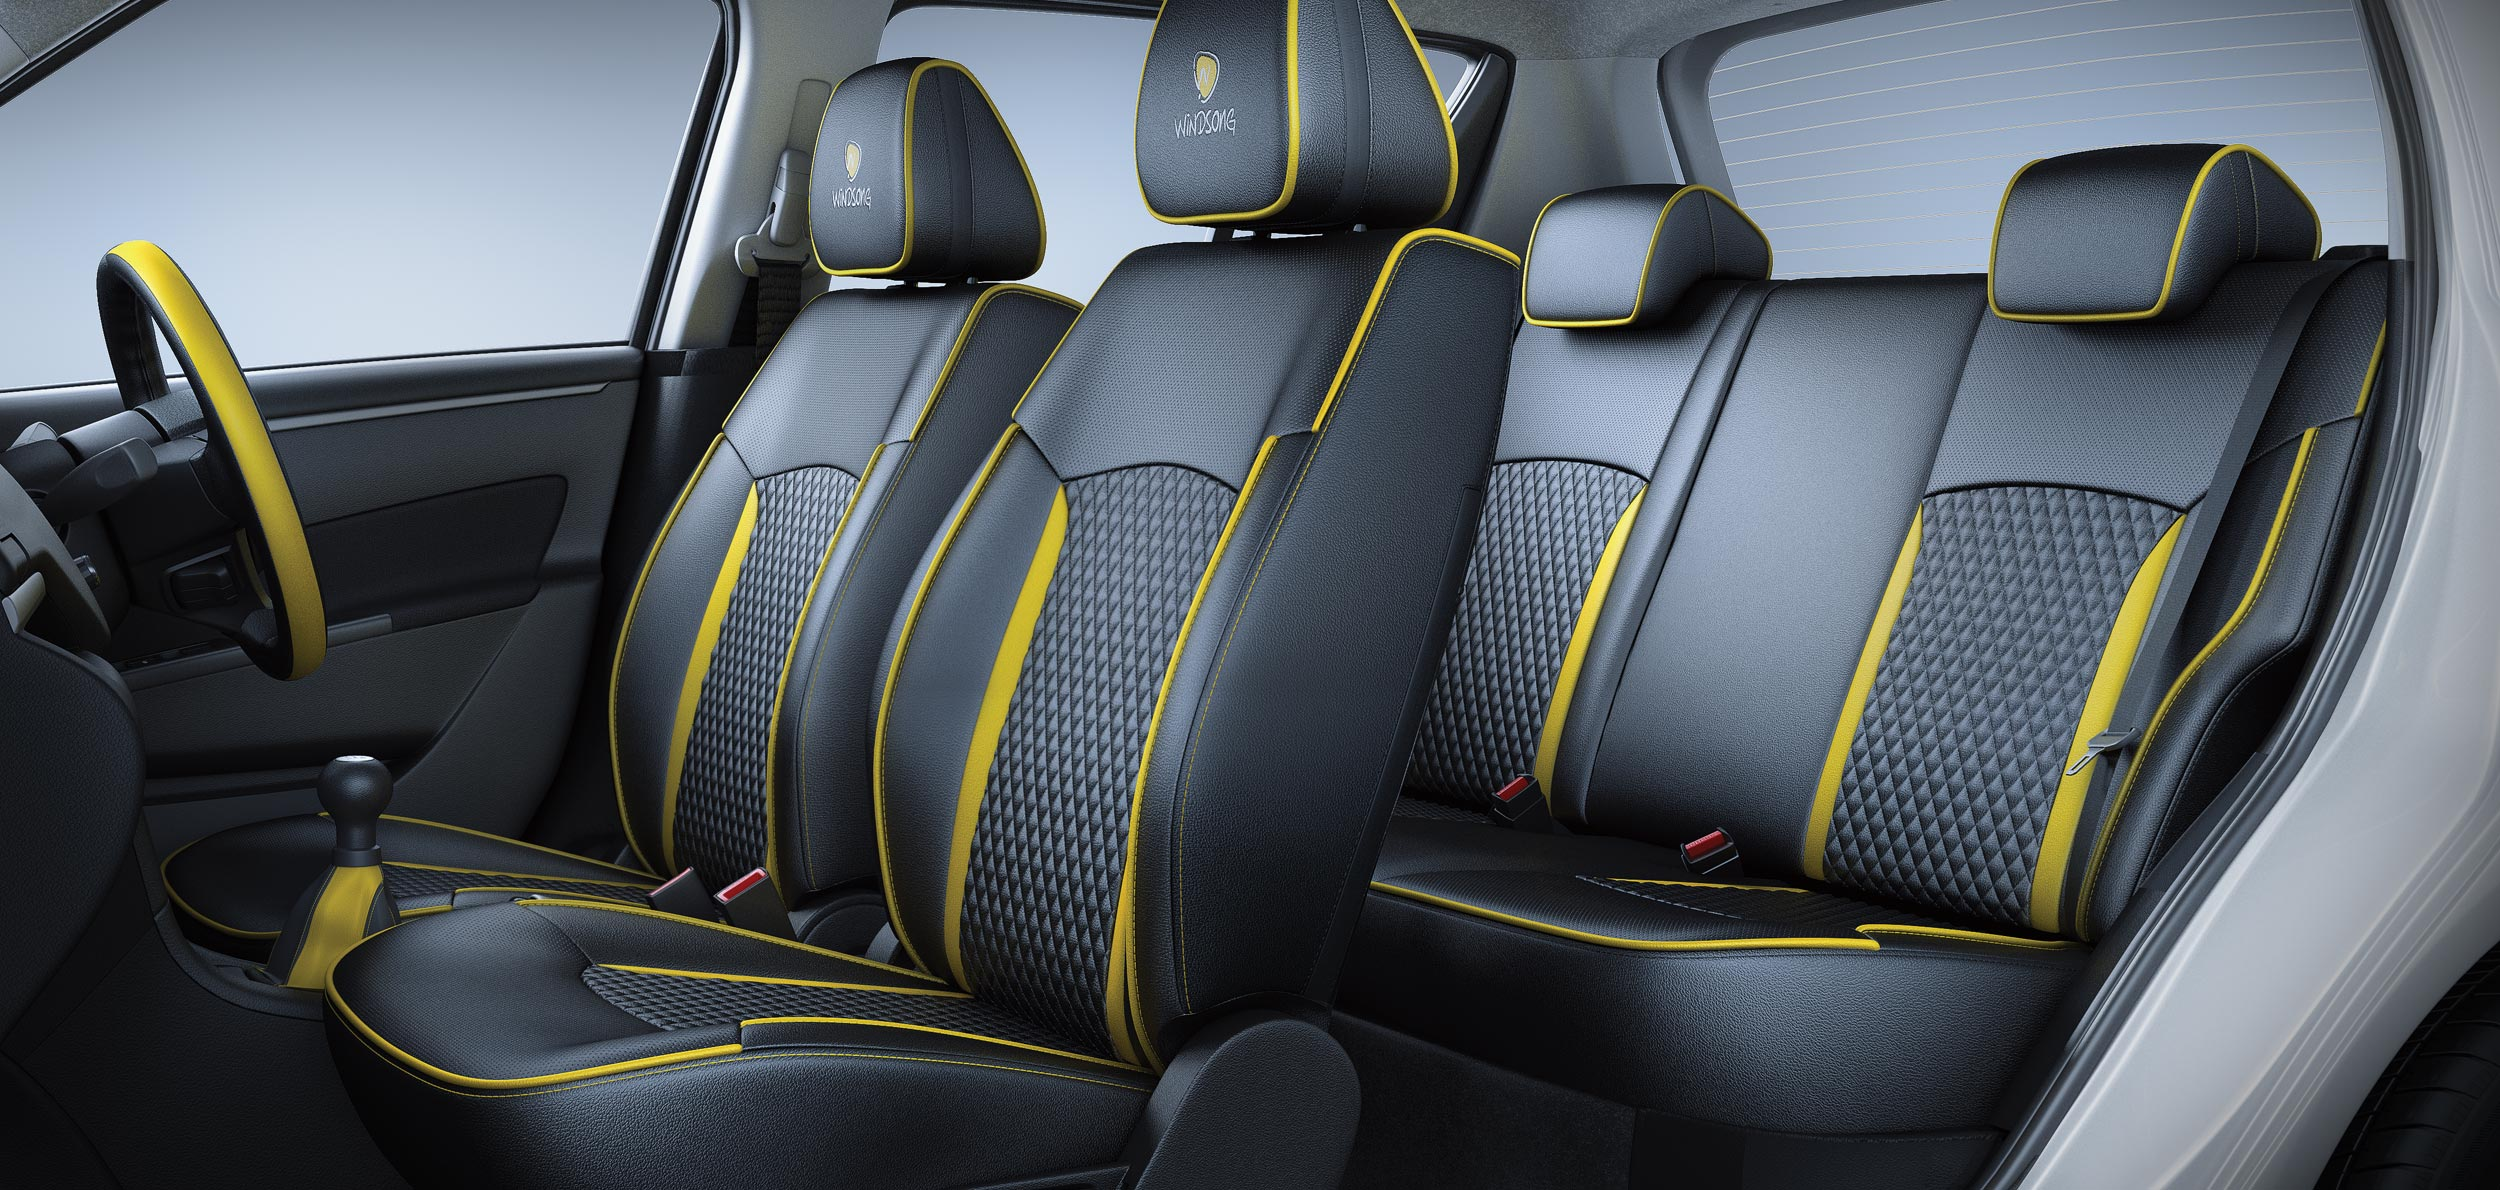 Seat Cover Designs For New Swift